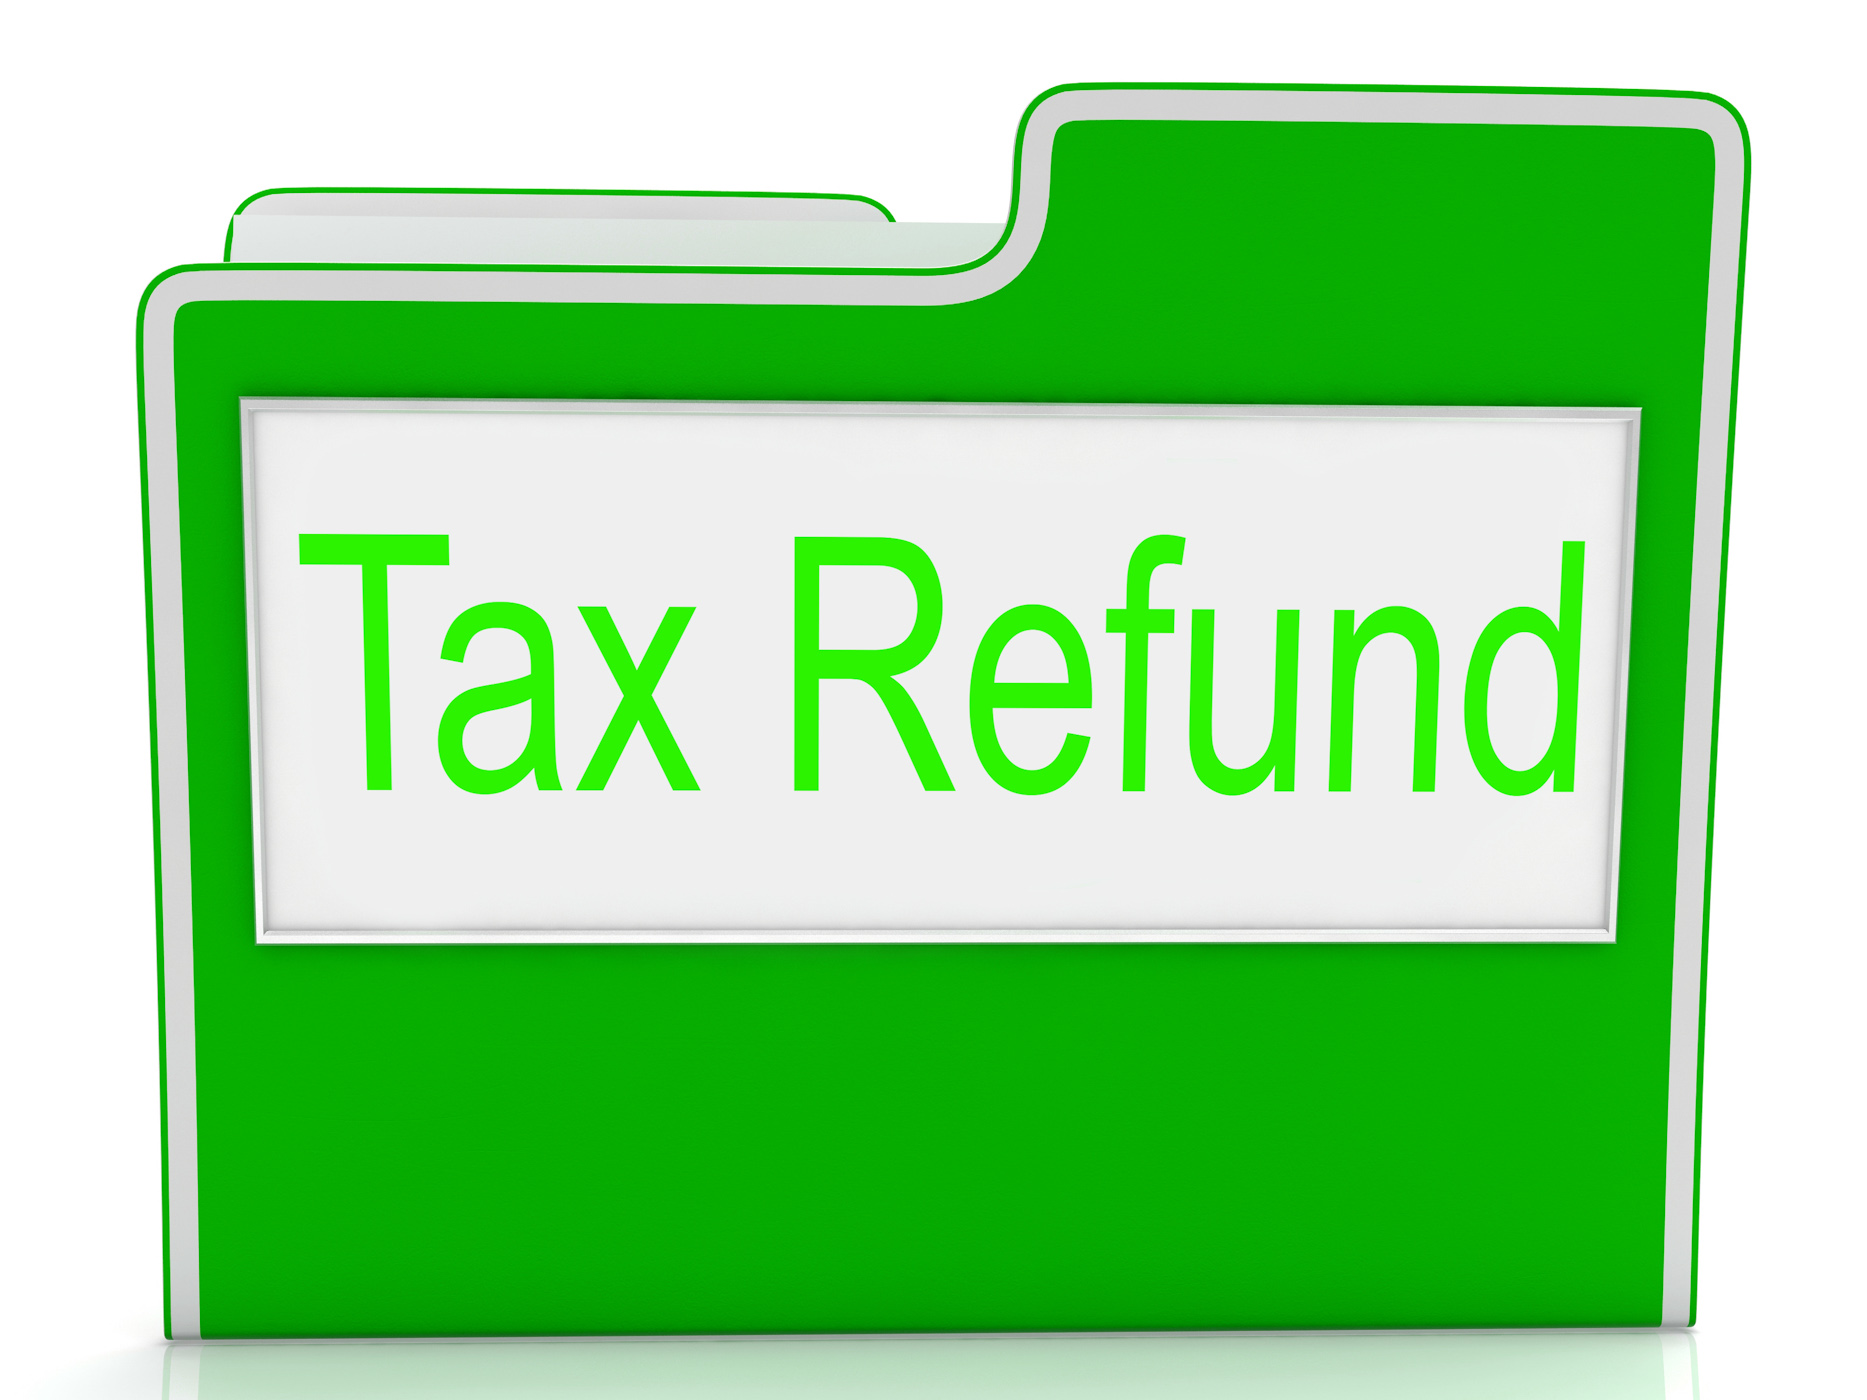 Tax refund shows taxes paid and business photo